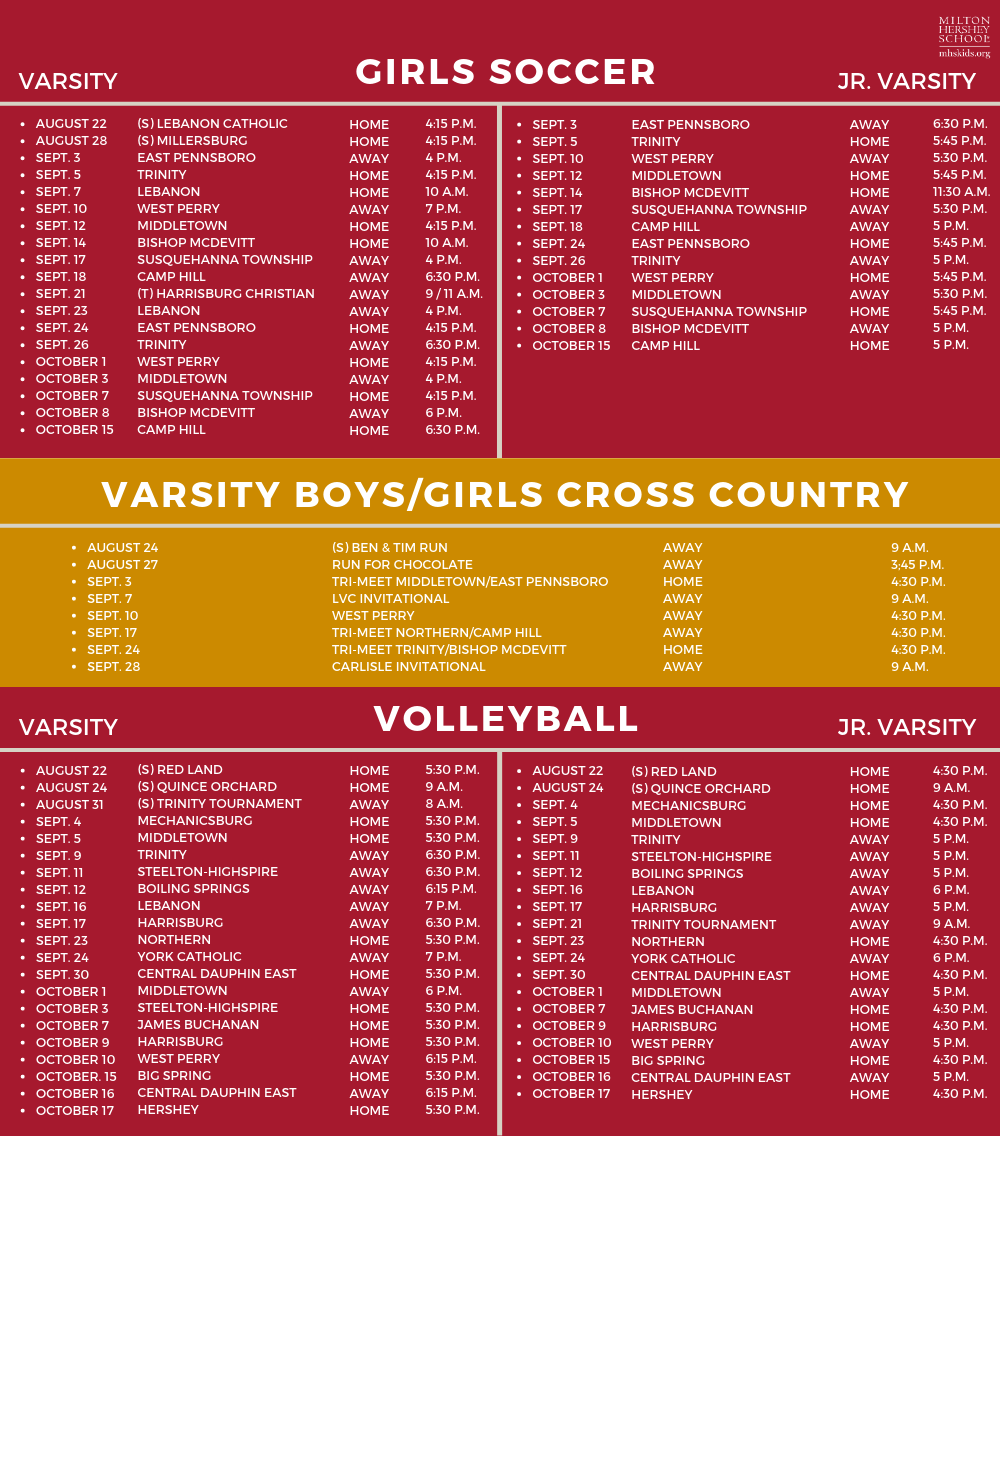 Fall athletic schedule for girls soccer, cross country, and volleyball.